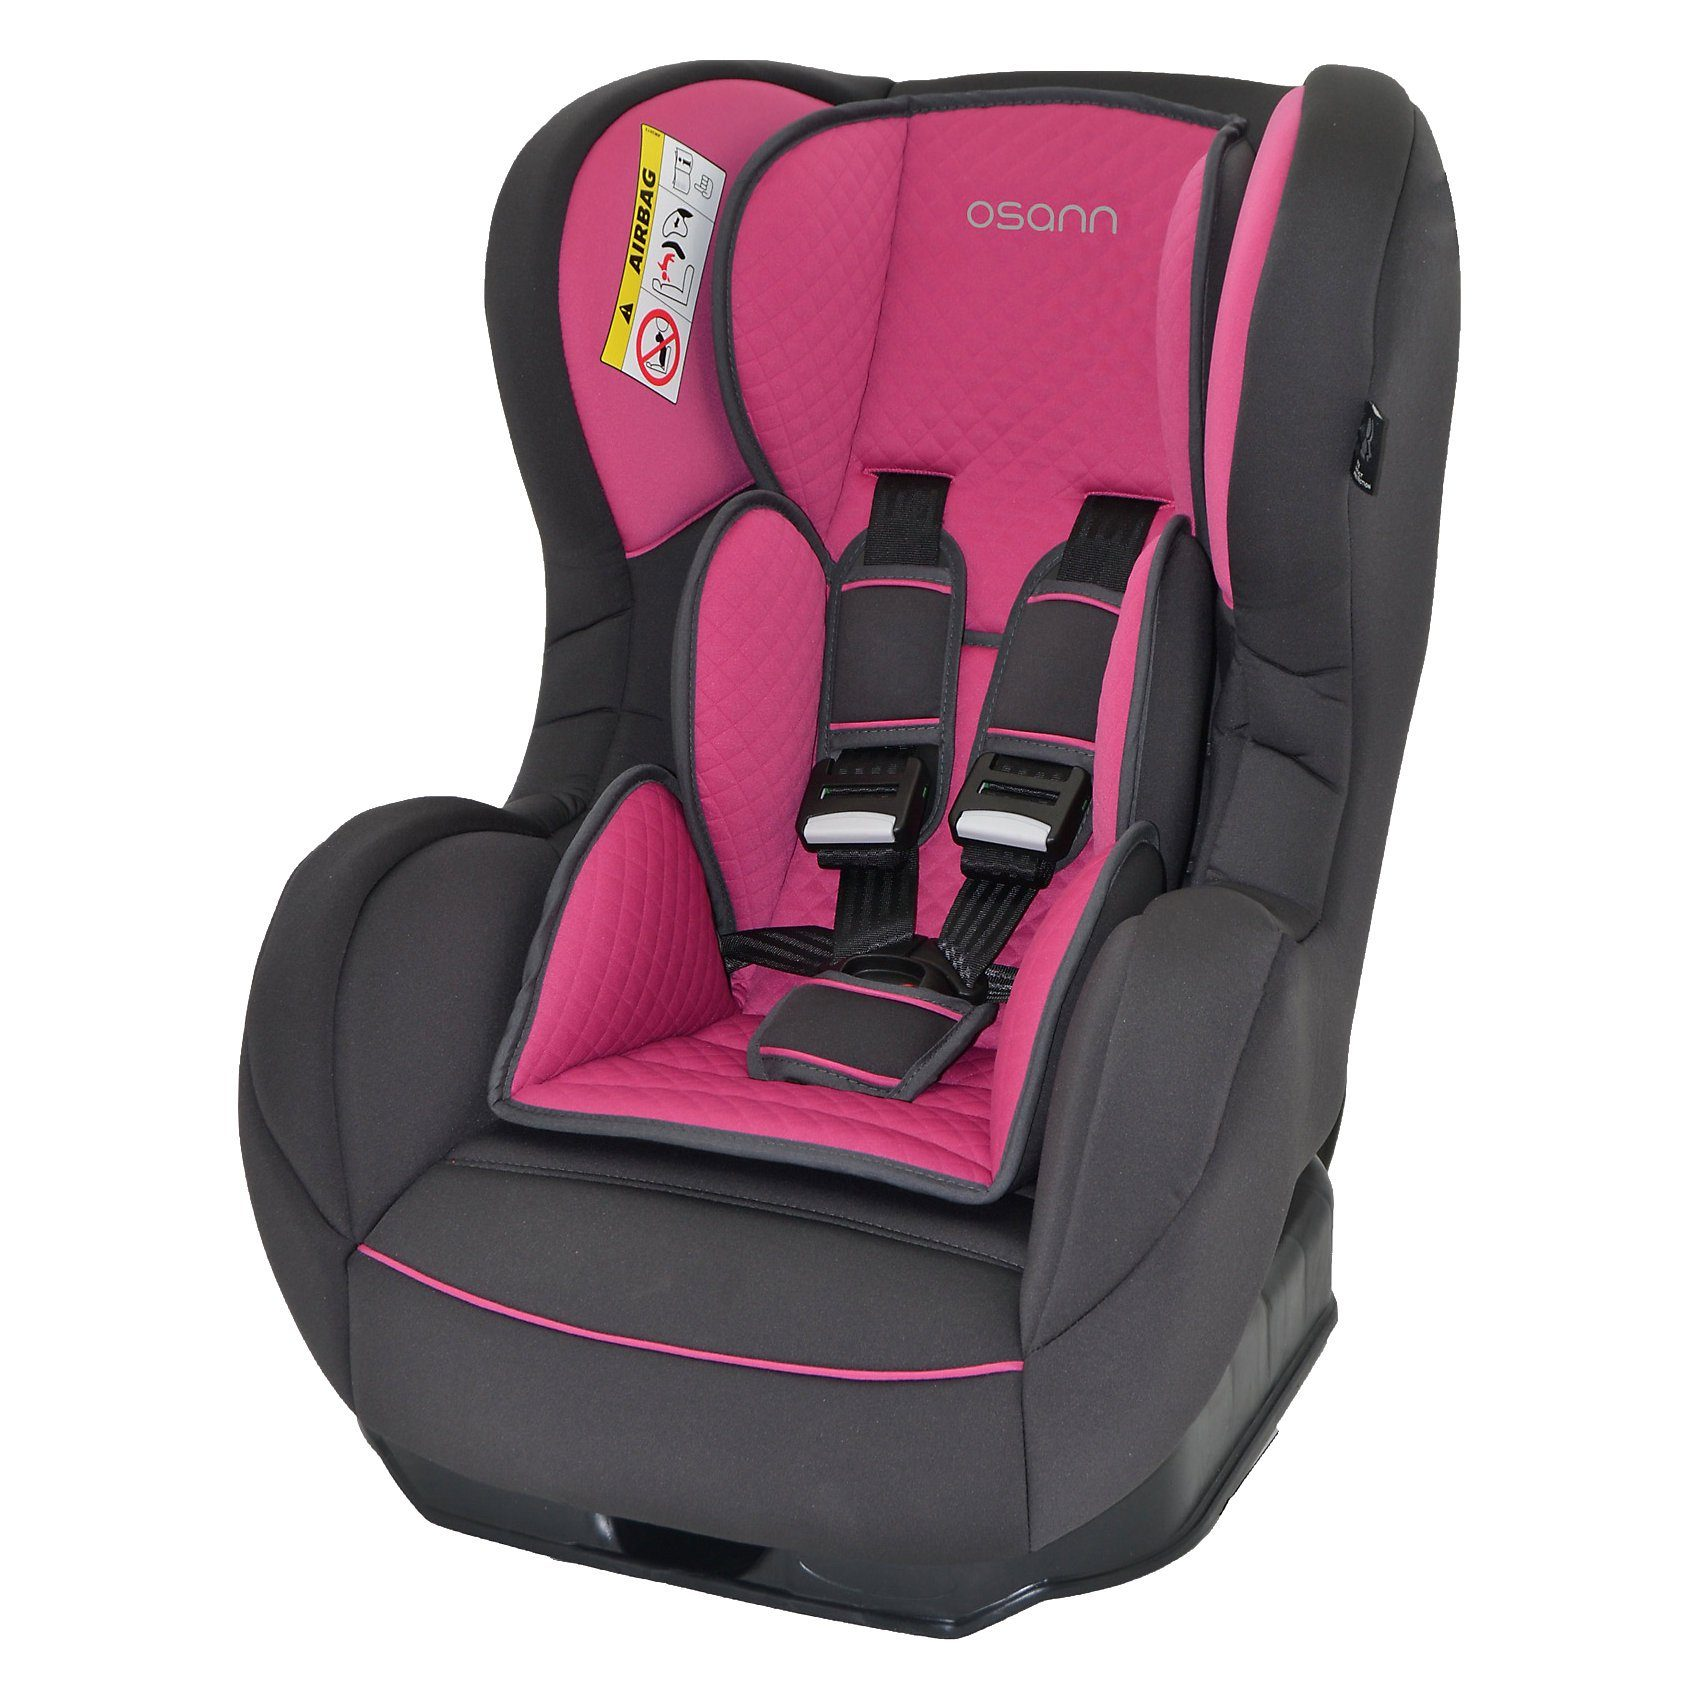 Osann Auto-Kindersitz Safety One, Quilt Framboise, 2017